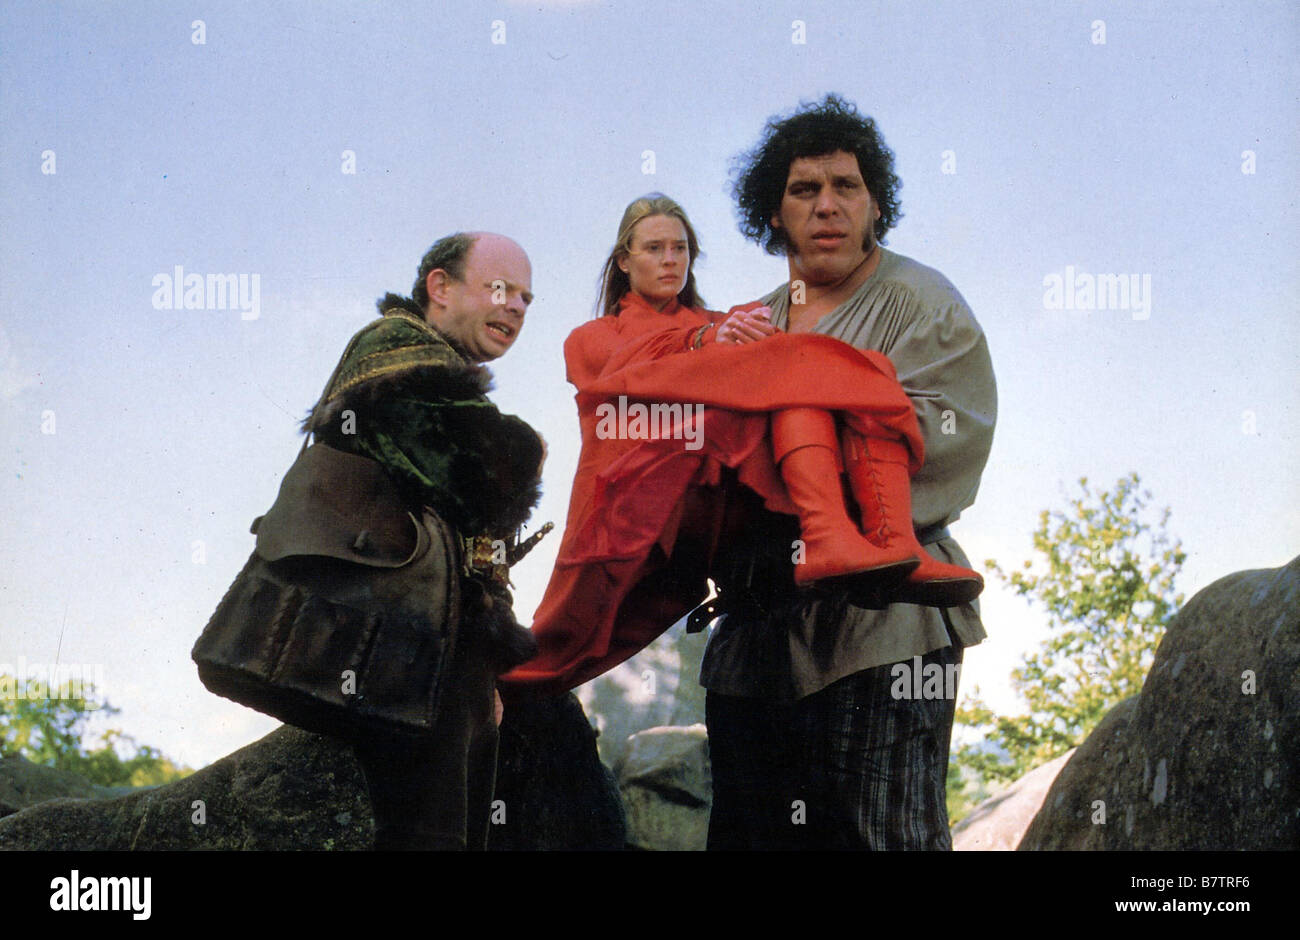 The Princess Bride  Year: 1987 USA Director: Rob Reiner Wallace Shawn, Robin Wright Penn, André the Giant Stock Photo